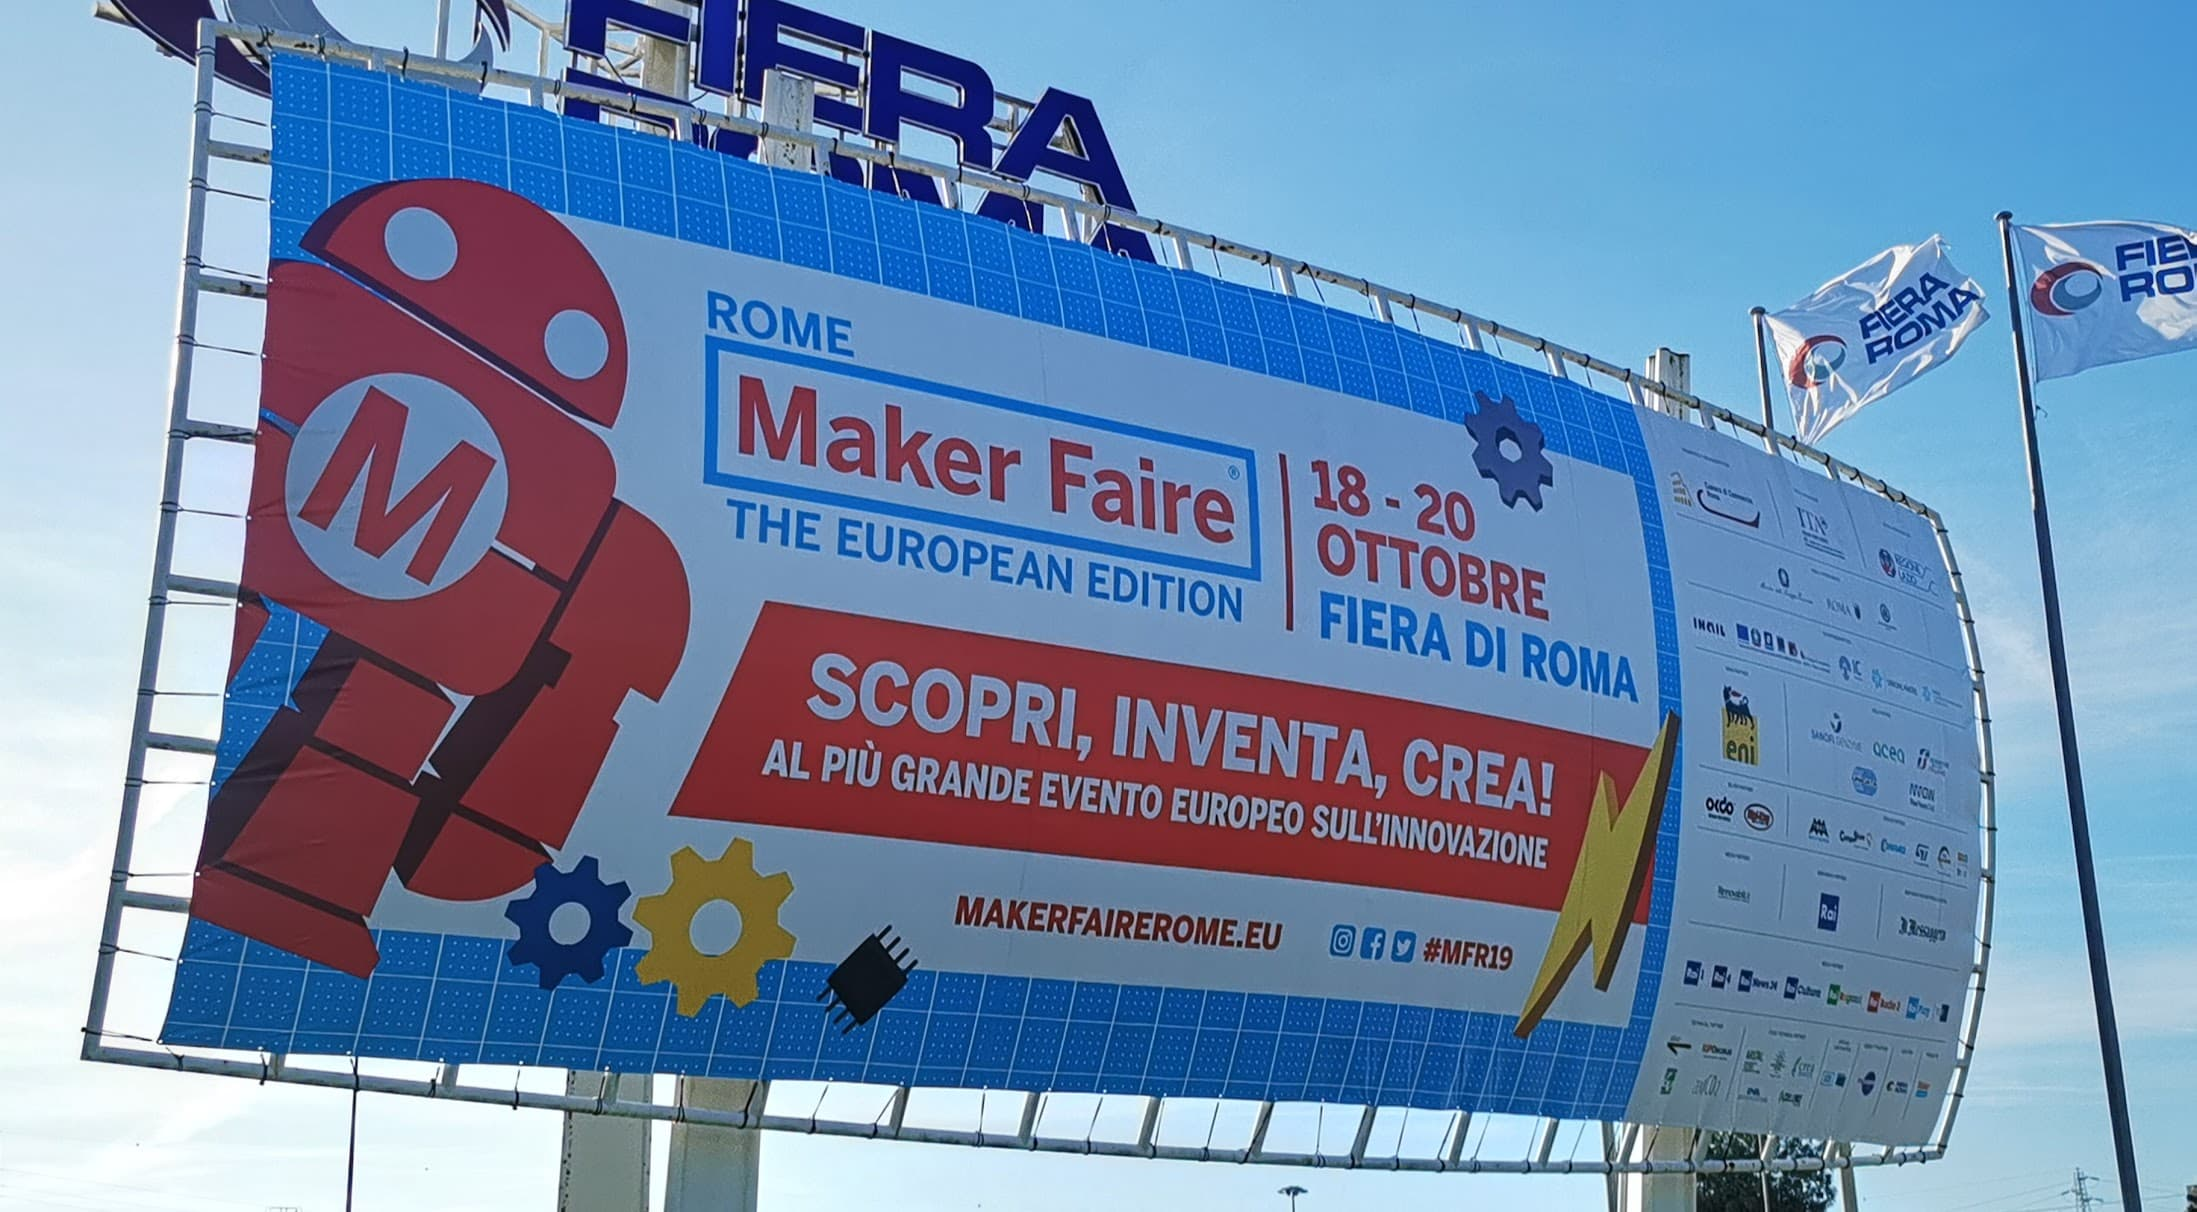 Maker Faire Rome 2019 – A perfect opportunity for startups to link up with investors.